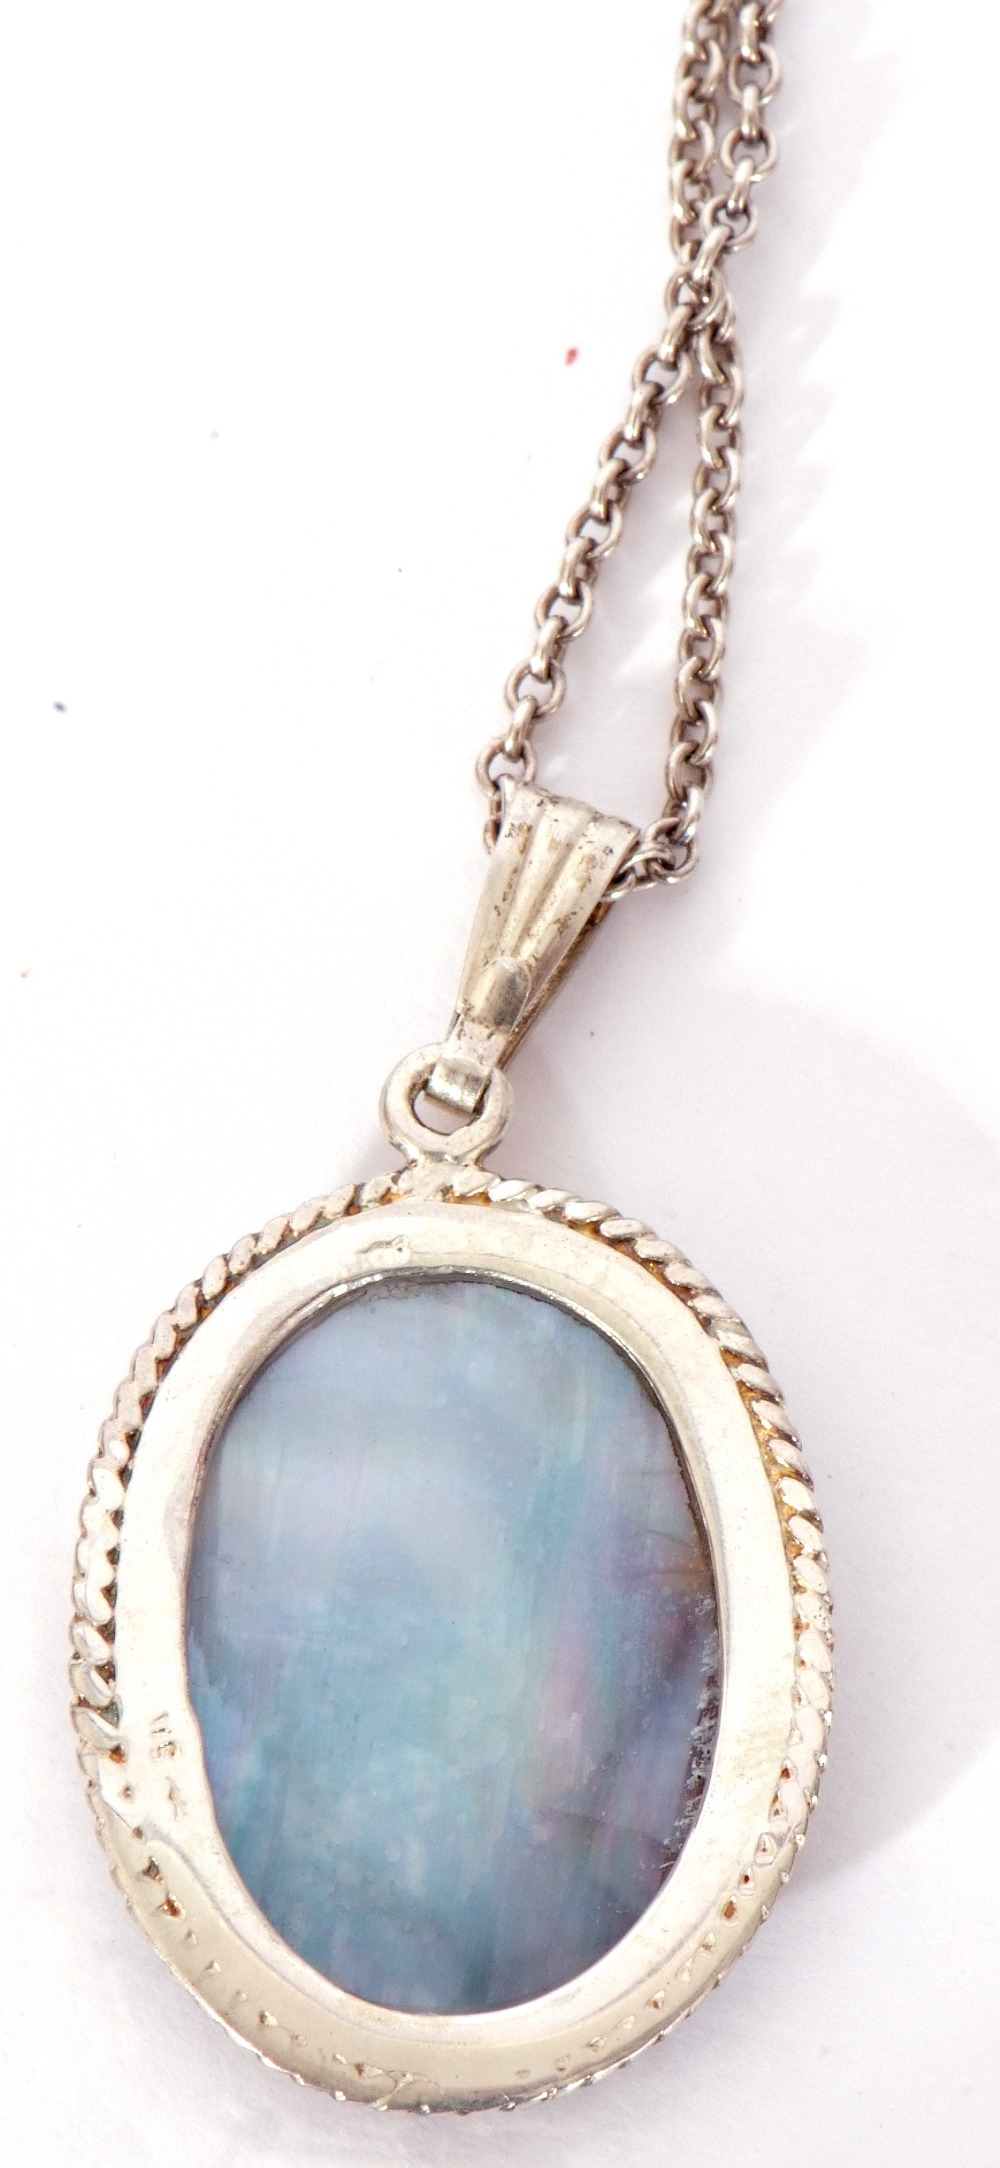 A Blue John oval pendant, 30 x 20mm, framed in a white metal mount and rope twist frame, suspended - Image 5 of 5